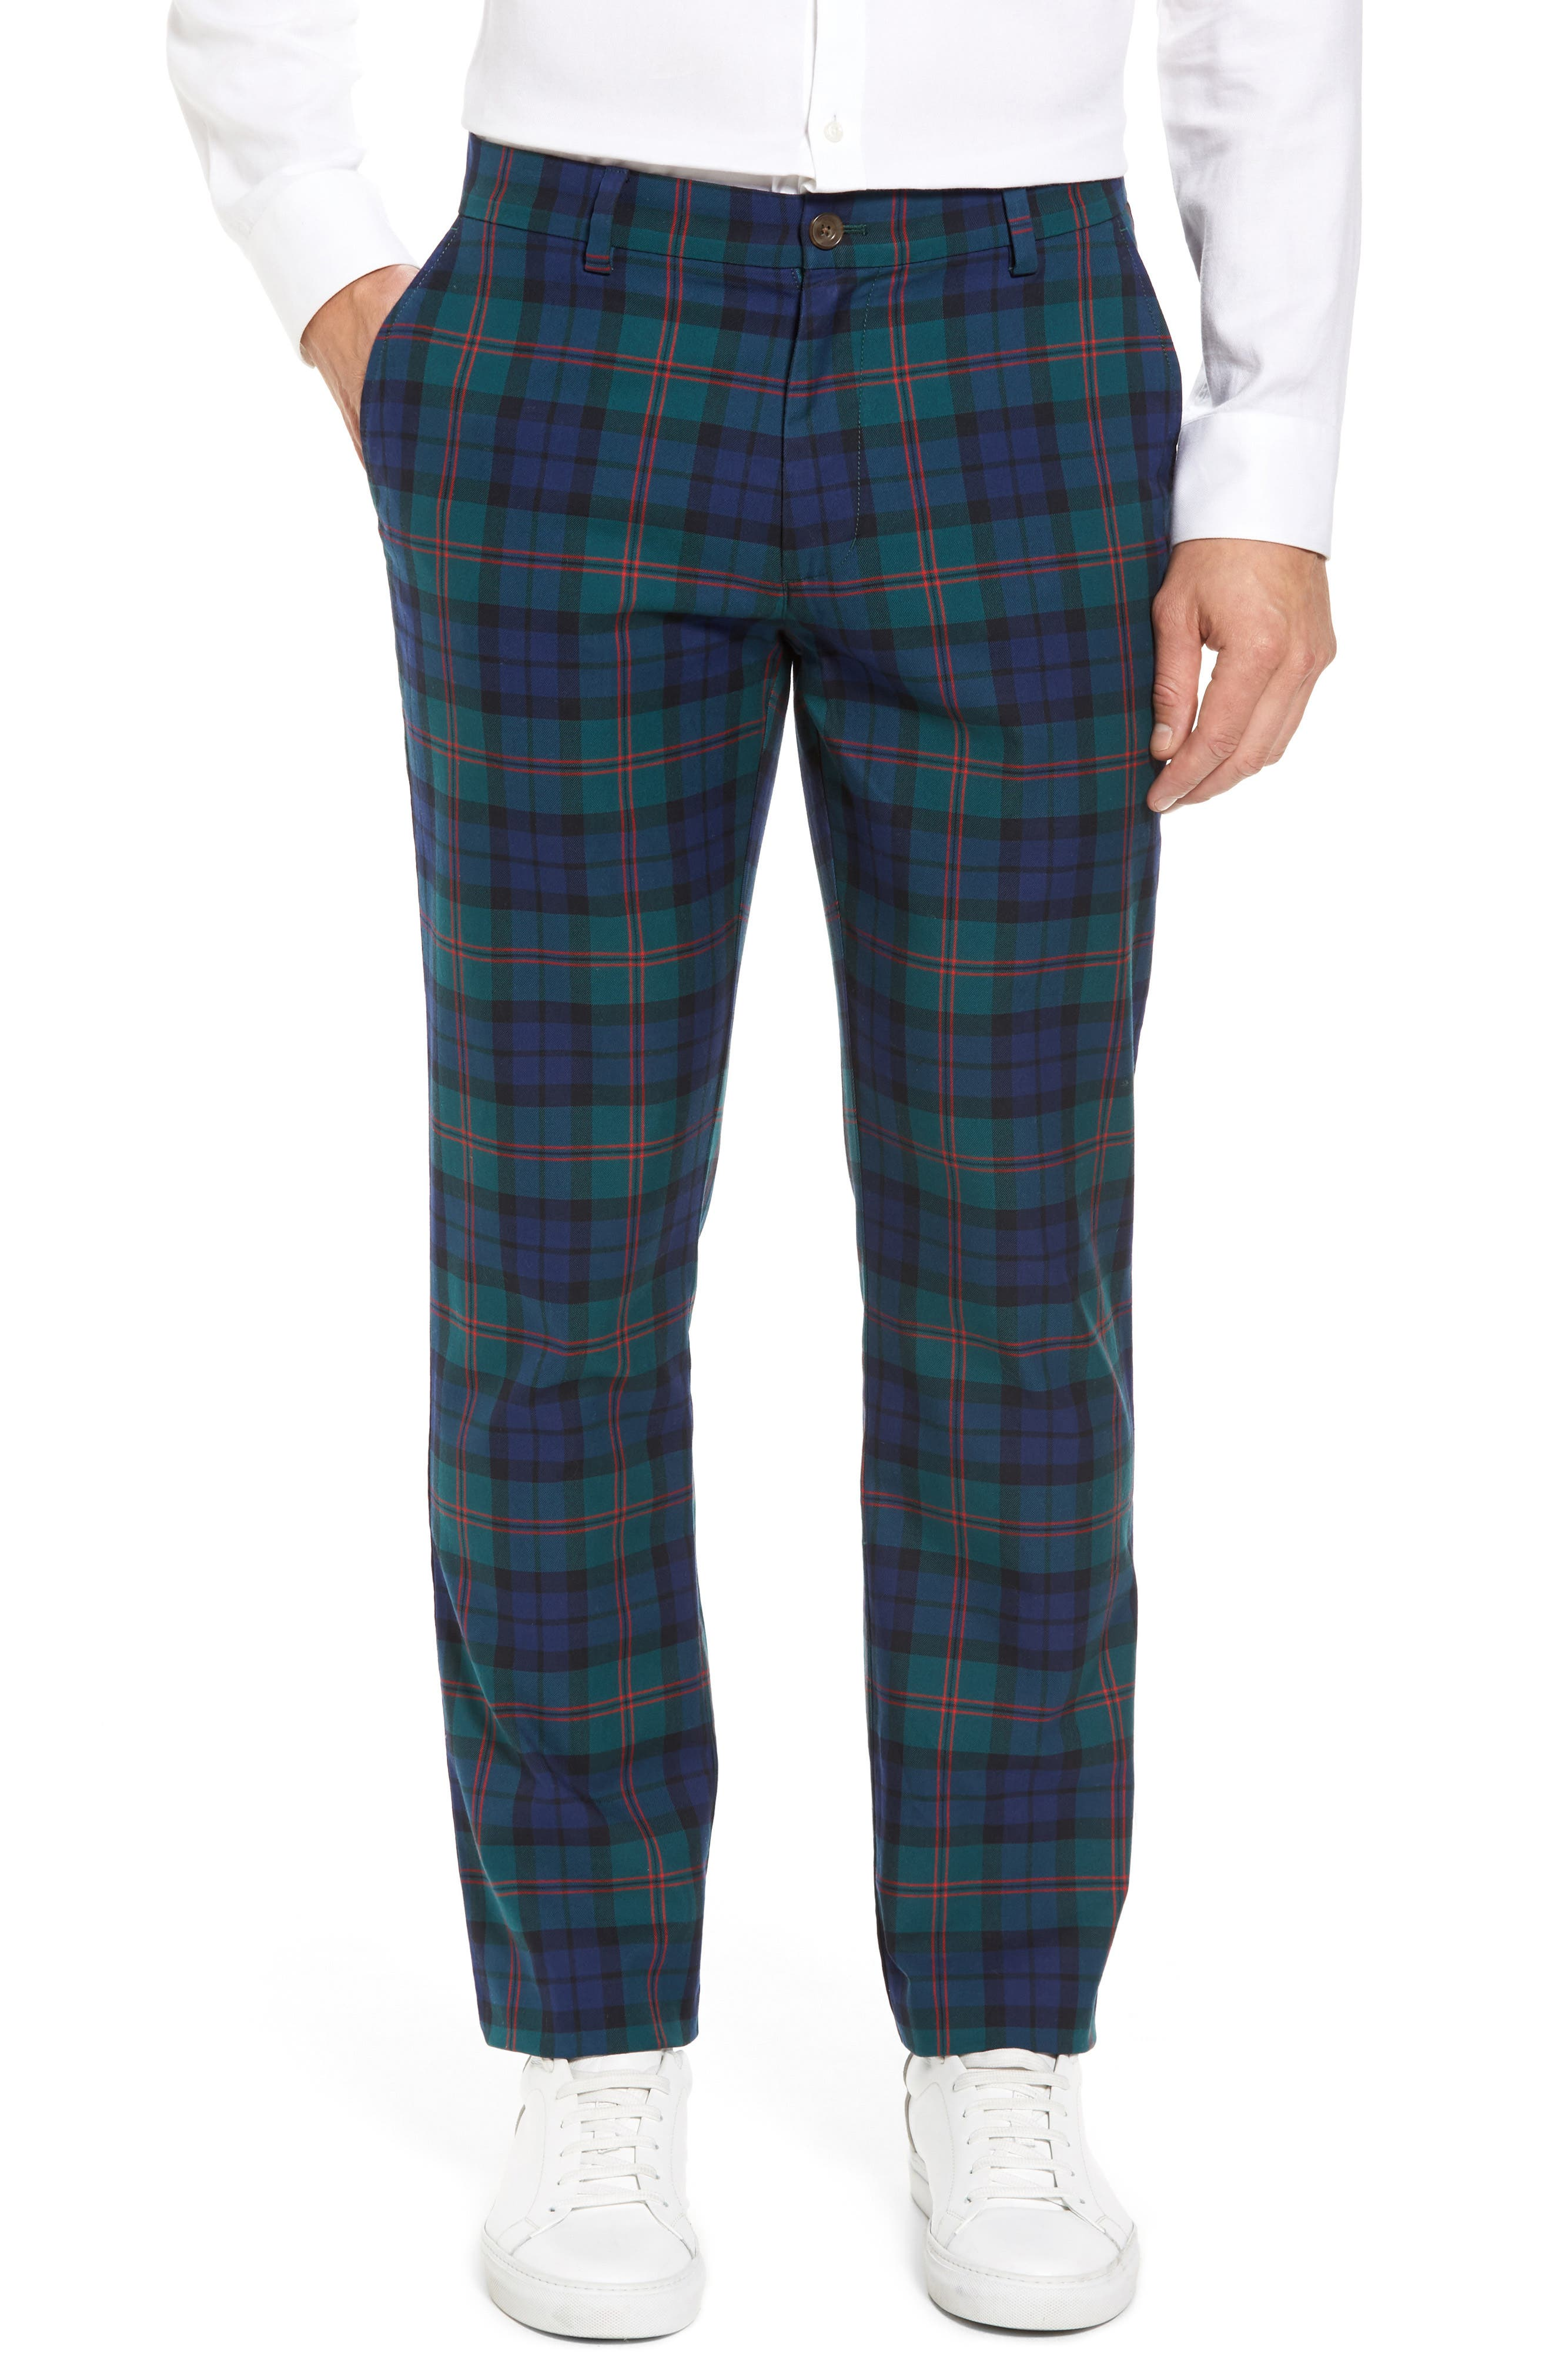 Alternate Image 1 Selected - vineyard vines Breaker Holiday Tartan Pants